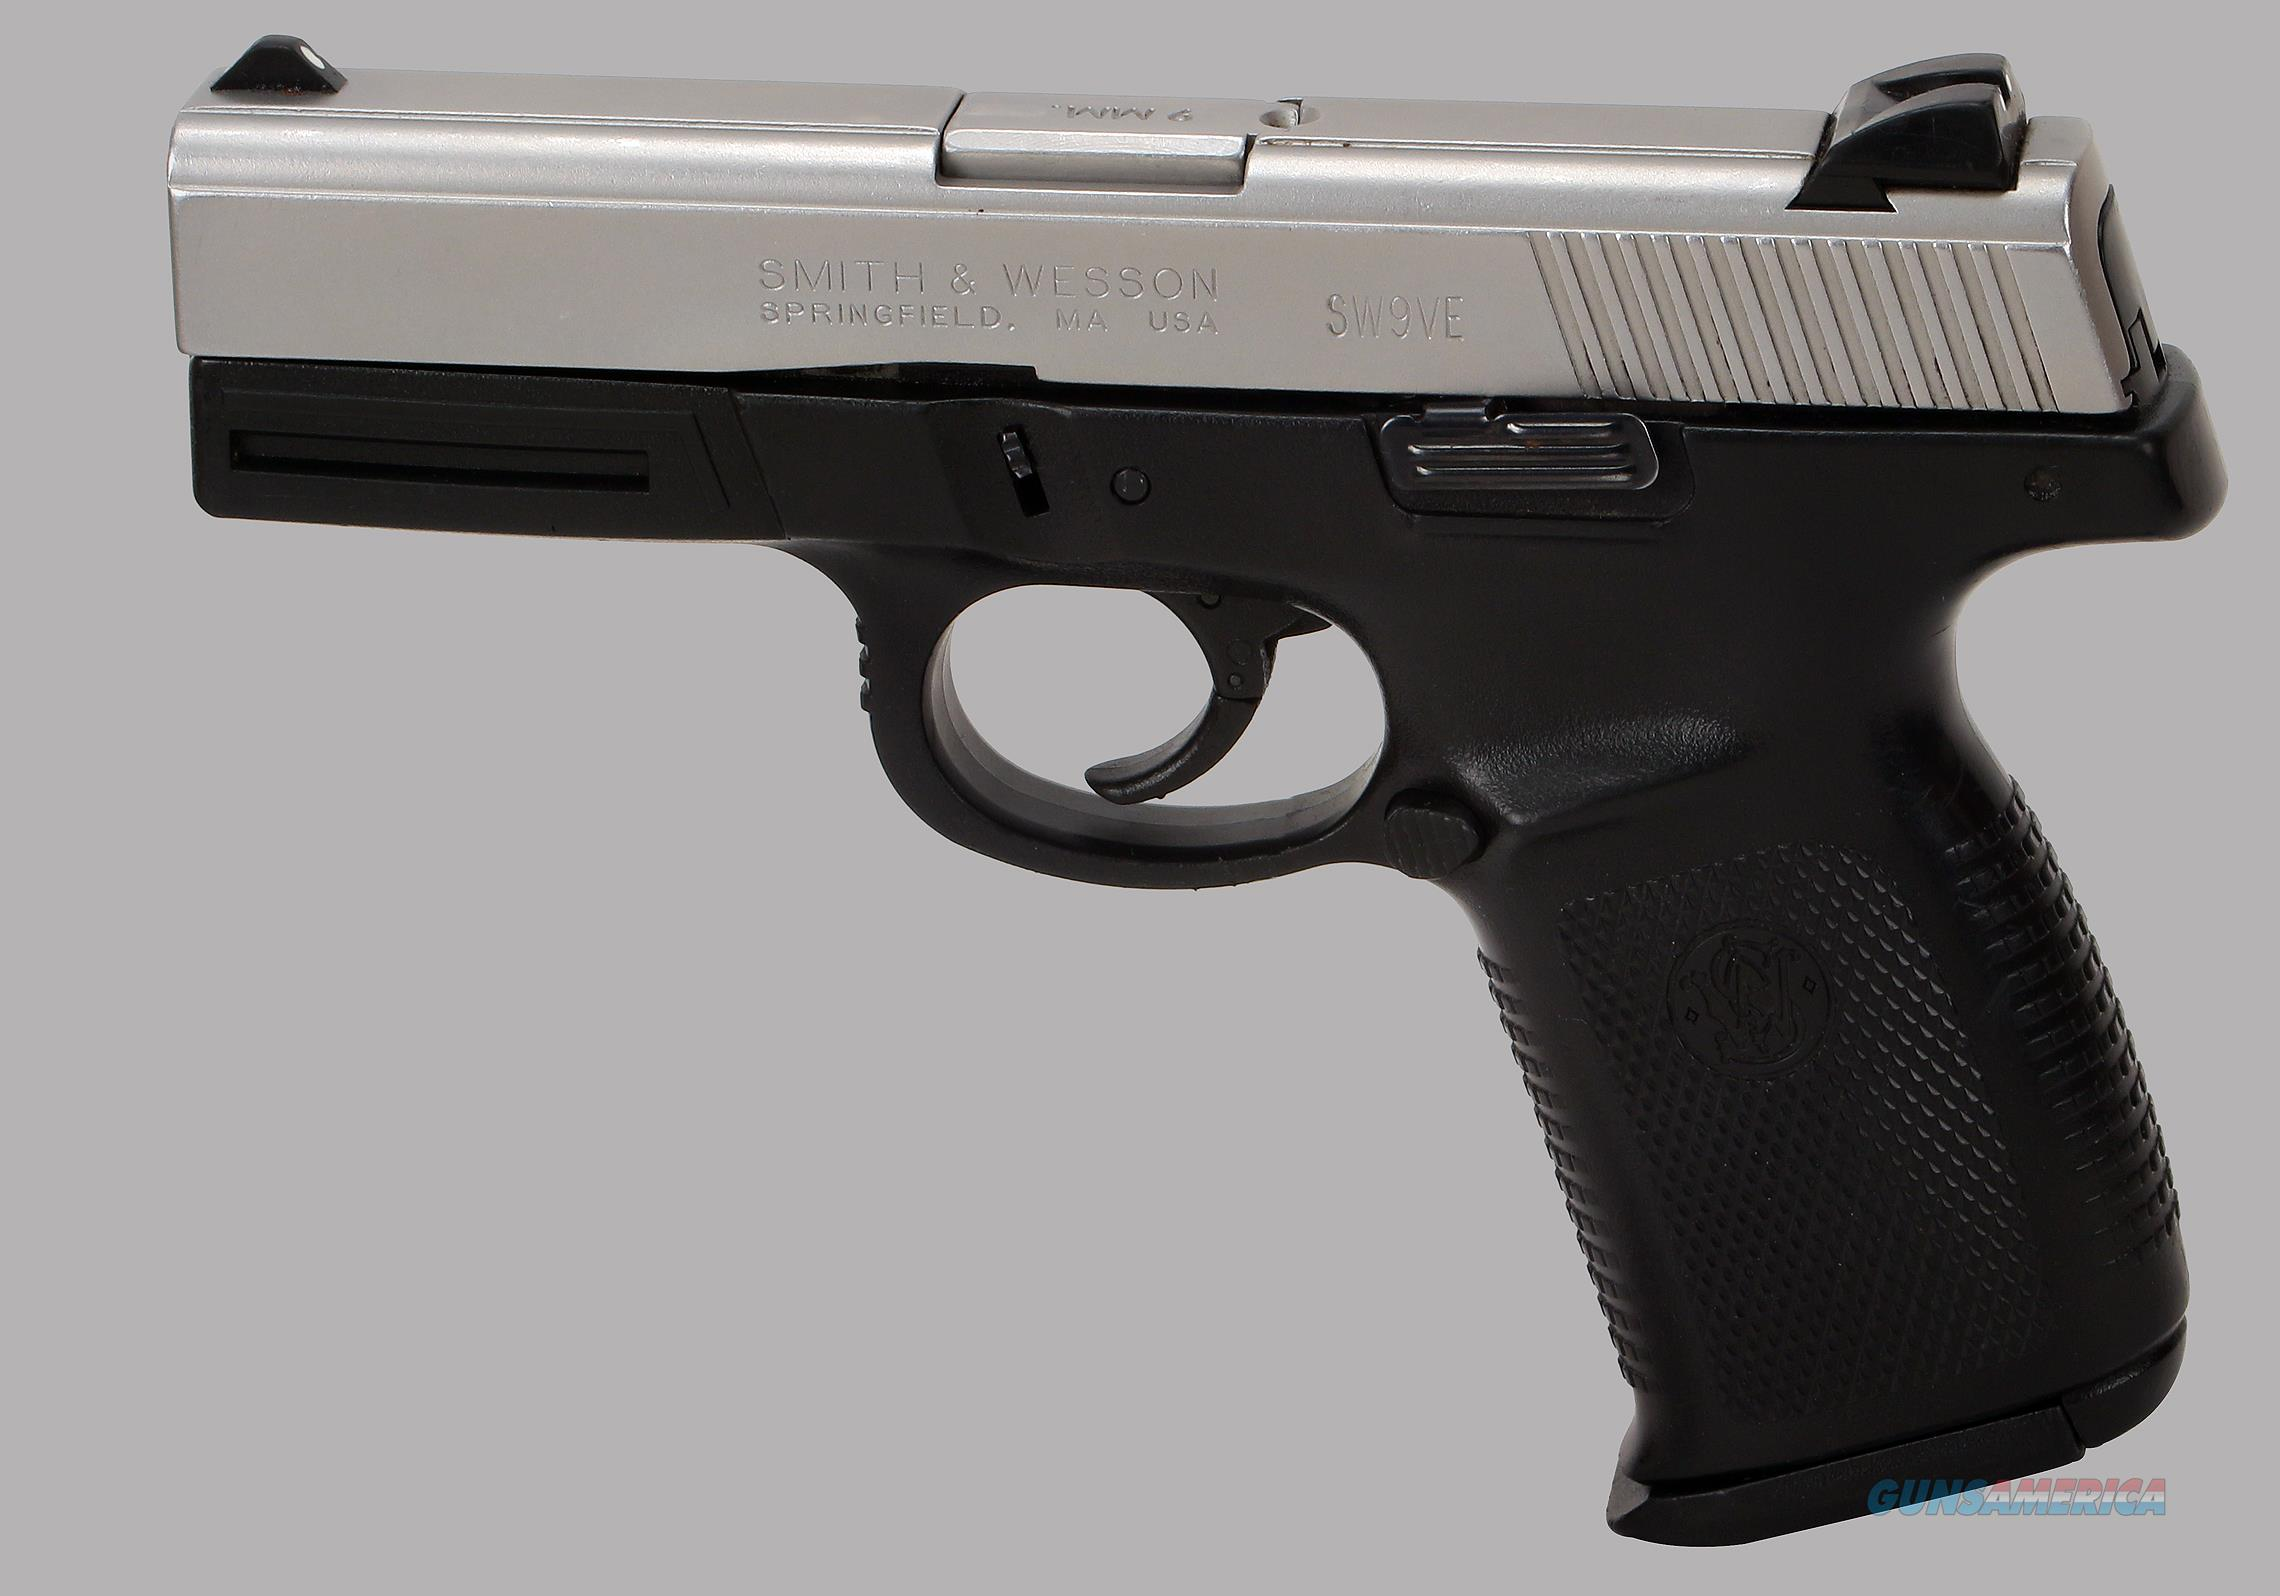 Smith & Wesson 9mm Model SW9VE Pistol  Guns > Pistols > Smith & Wesson Pistols - Autos > Polymer Frame